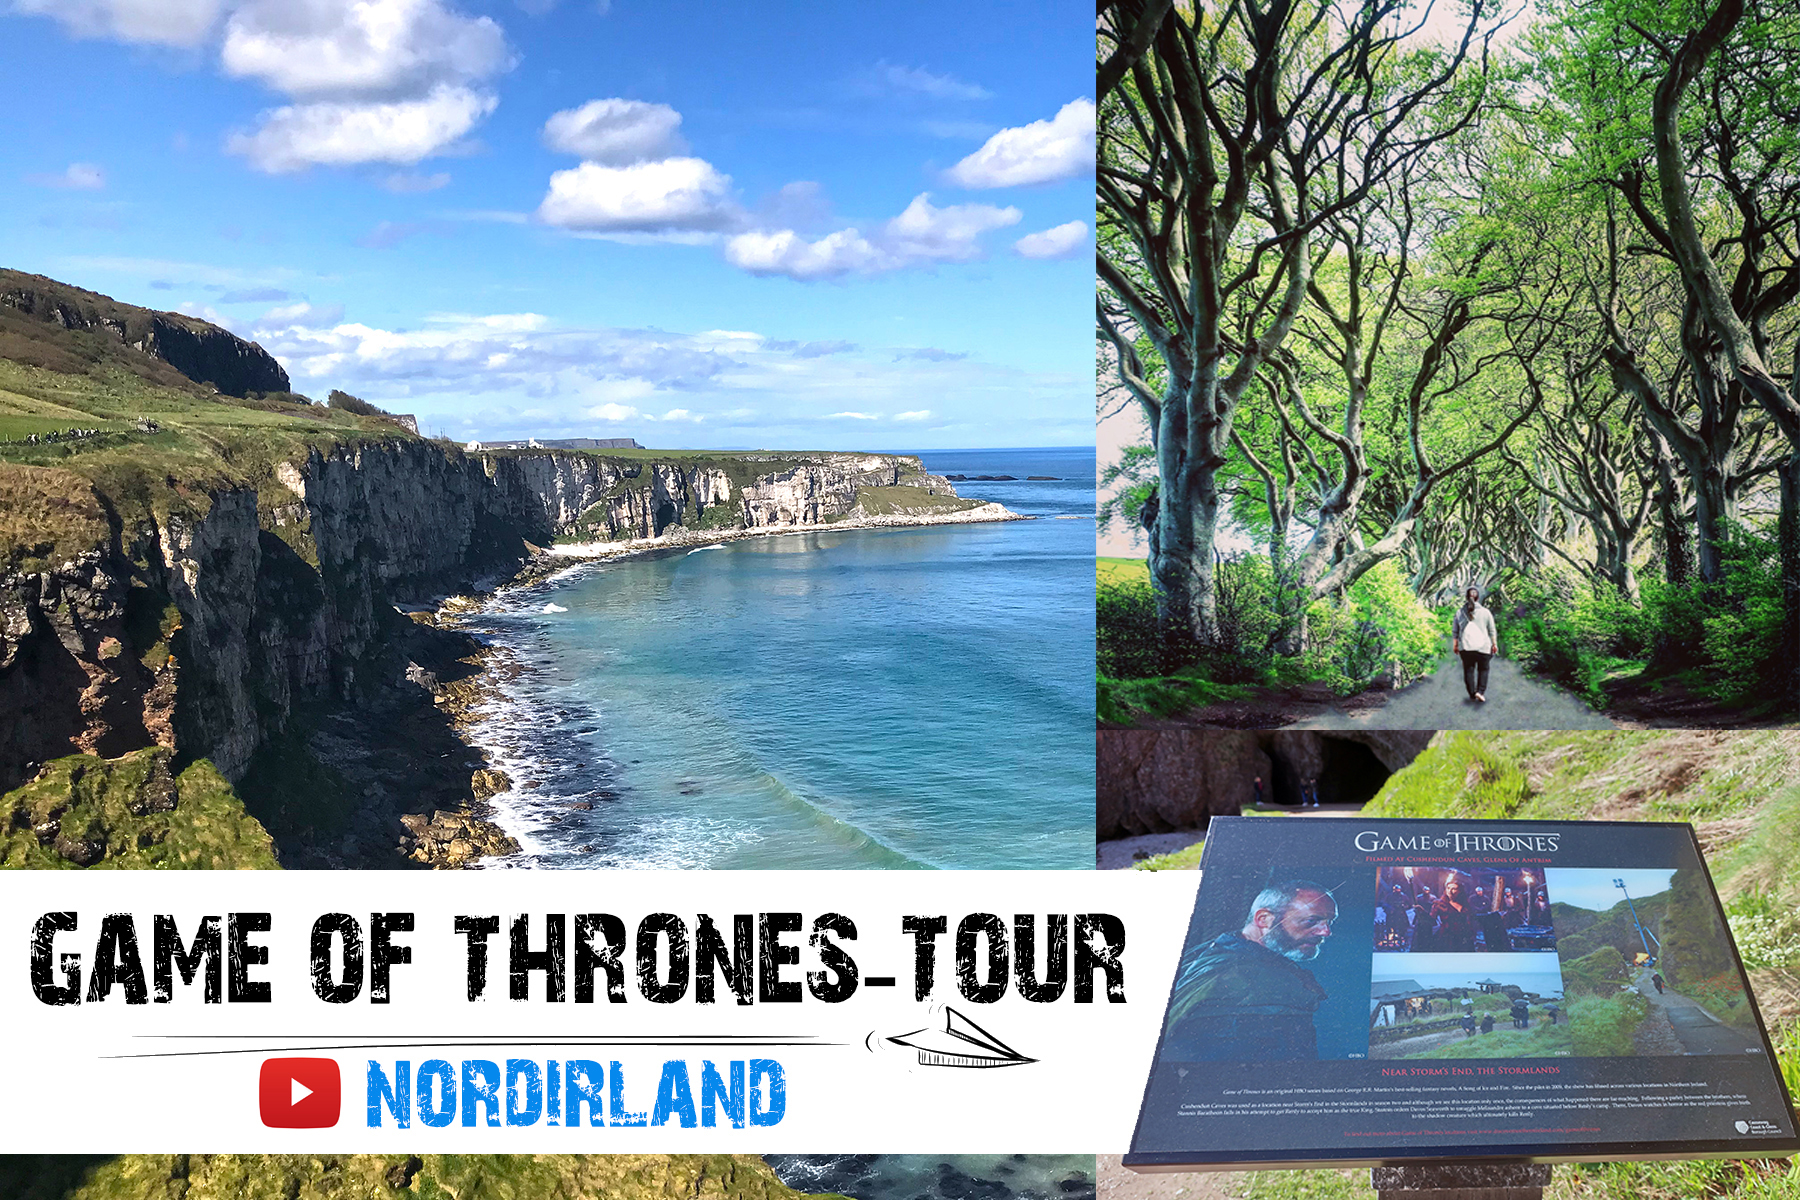 Reisevideo: Auf Game of Thrones-Tour in Nordirland